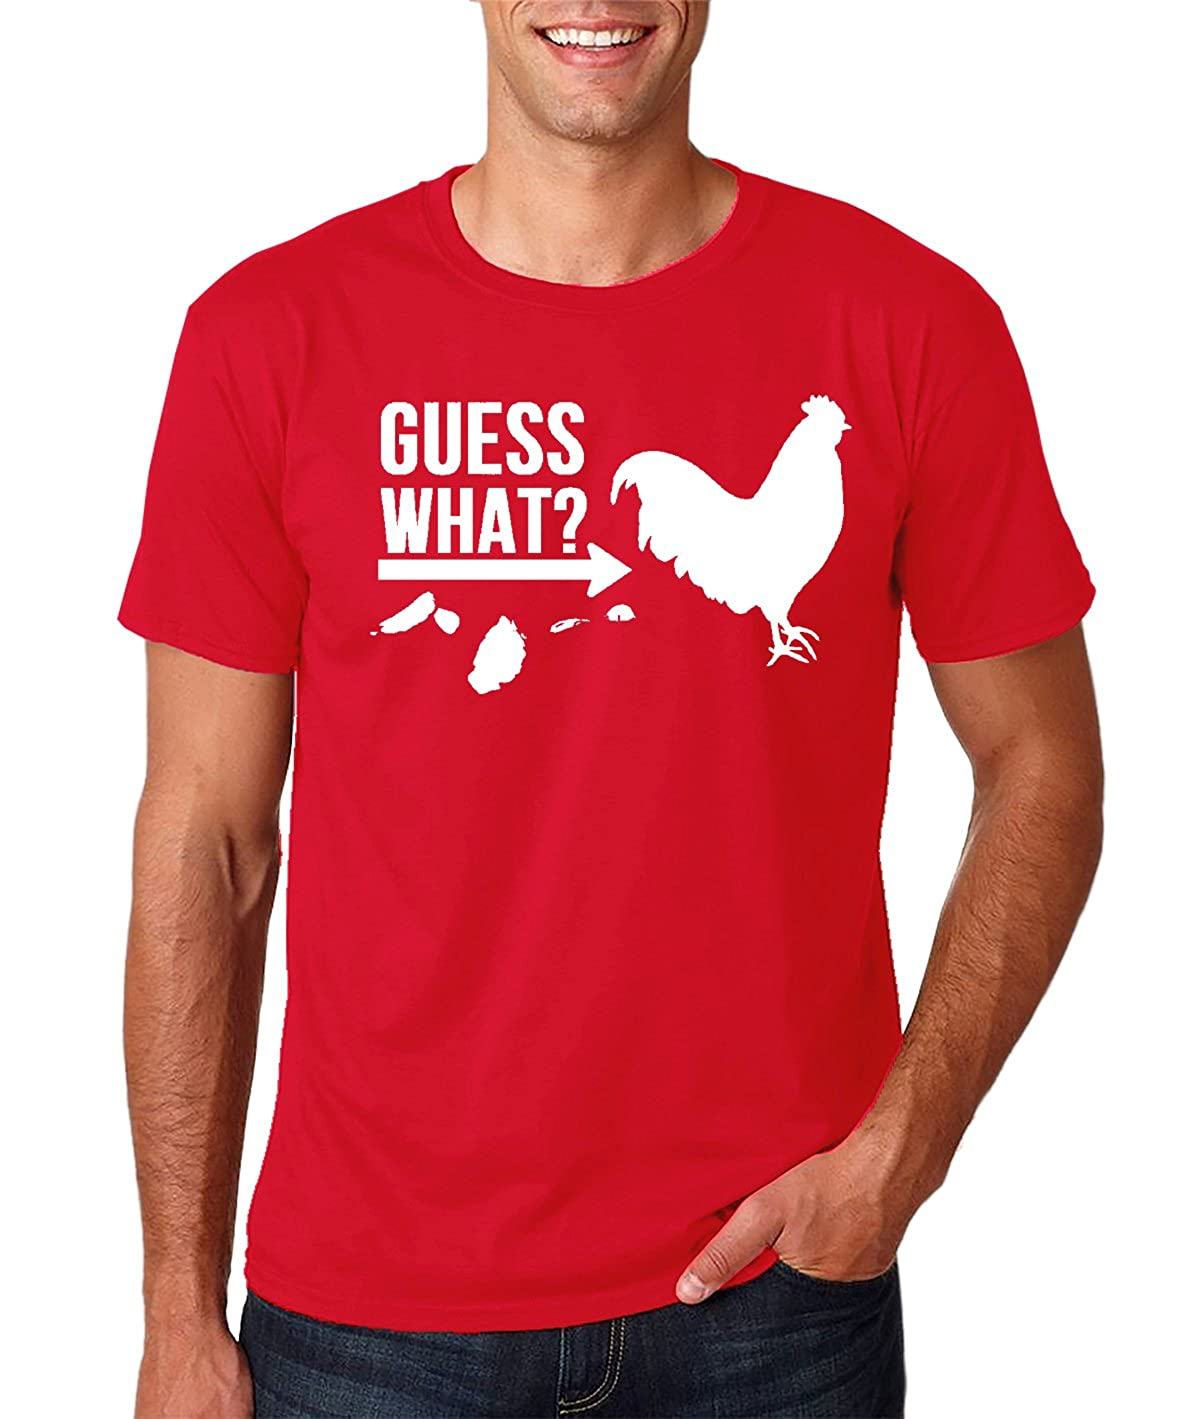 Amazon.com: AW Fashions Guess What? Chicken Butt - Funny Chicken Graphic - Geek Sarcastic Mens T-Shirt: Clothing